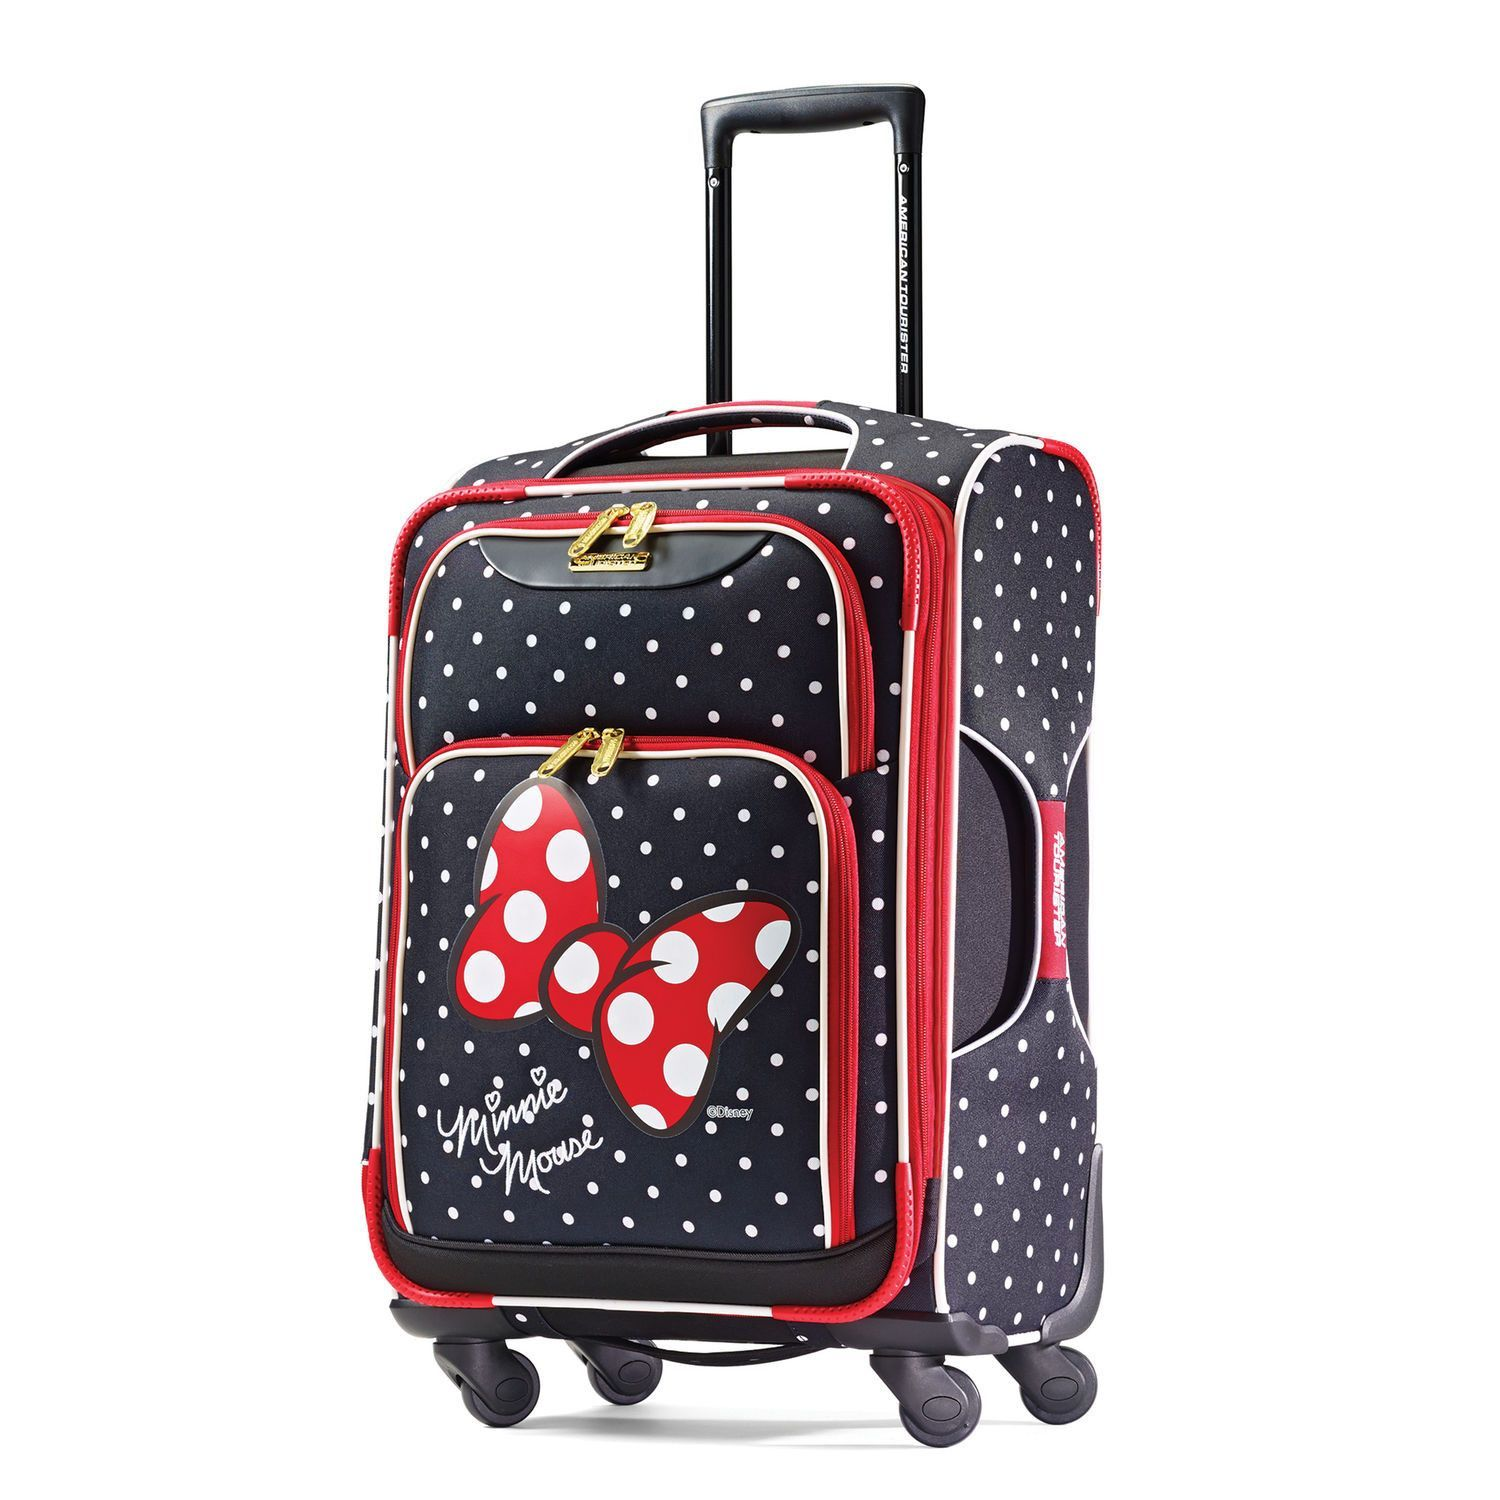 94a4e6672d Single spinner wheels. • Beveled push button locking retractable pull  handle. • Integrated top   side American Tourister branded carry handles.